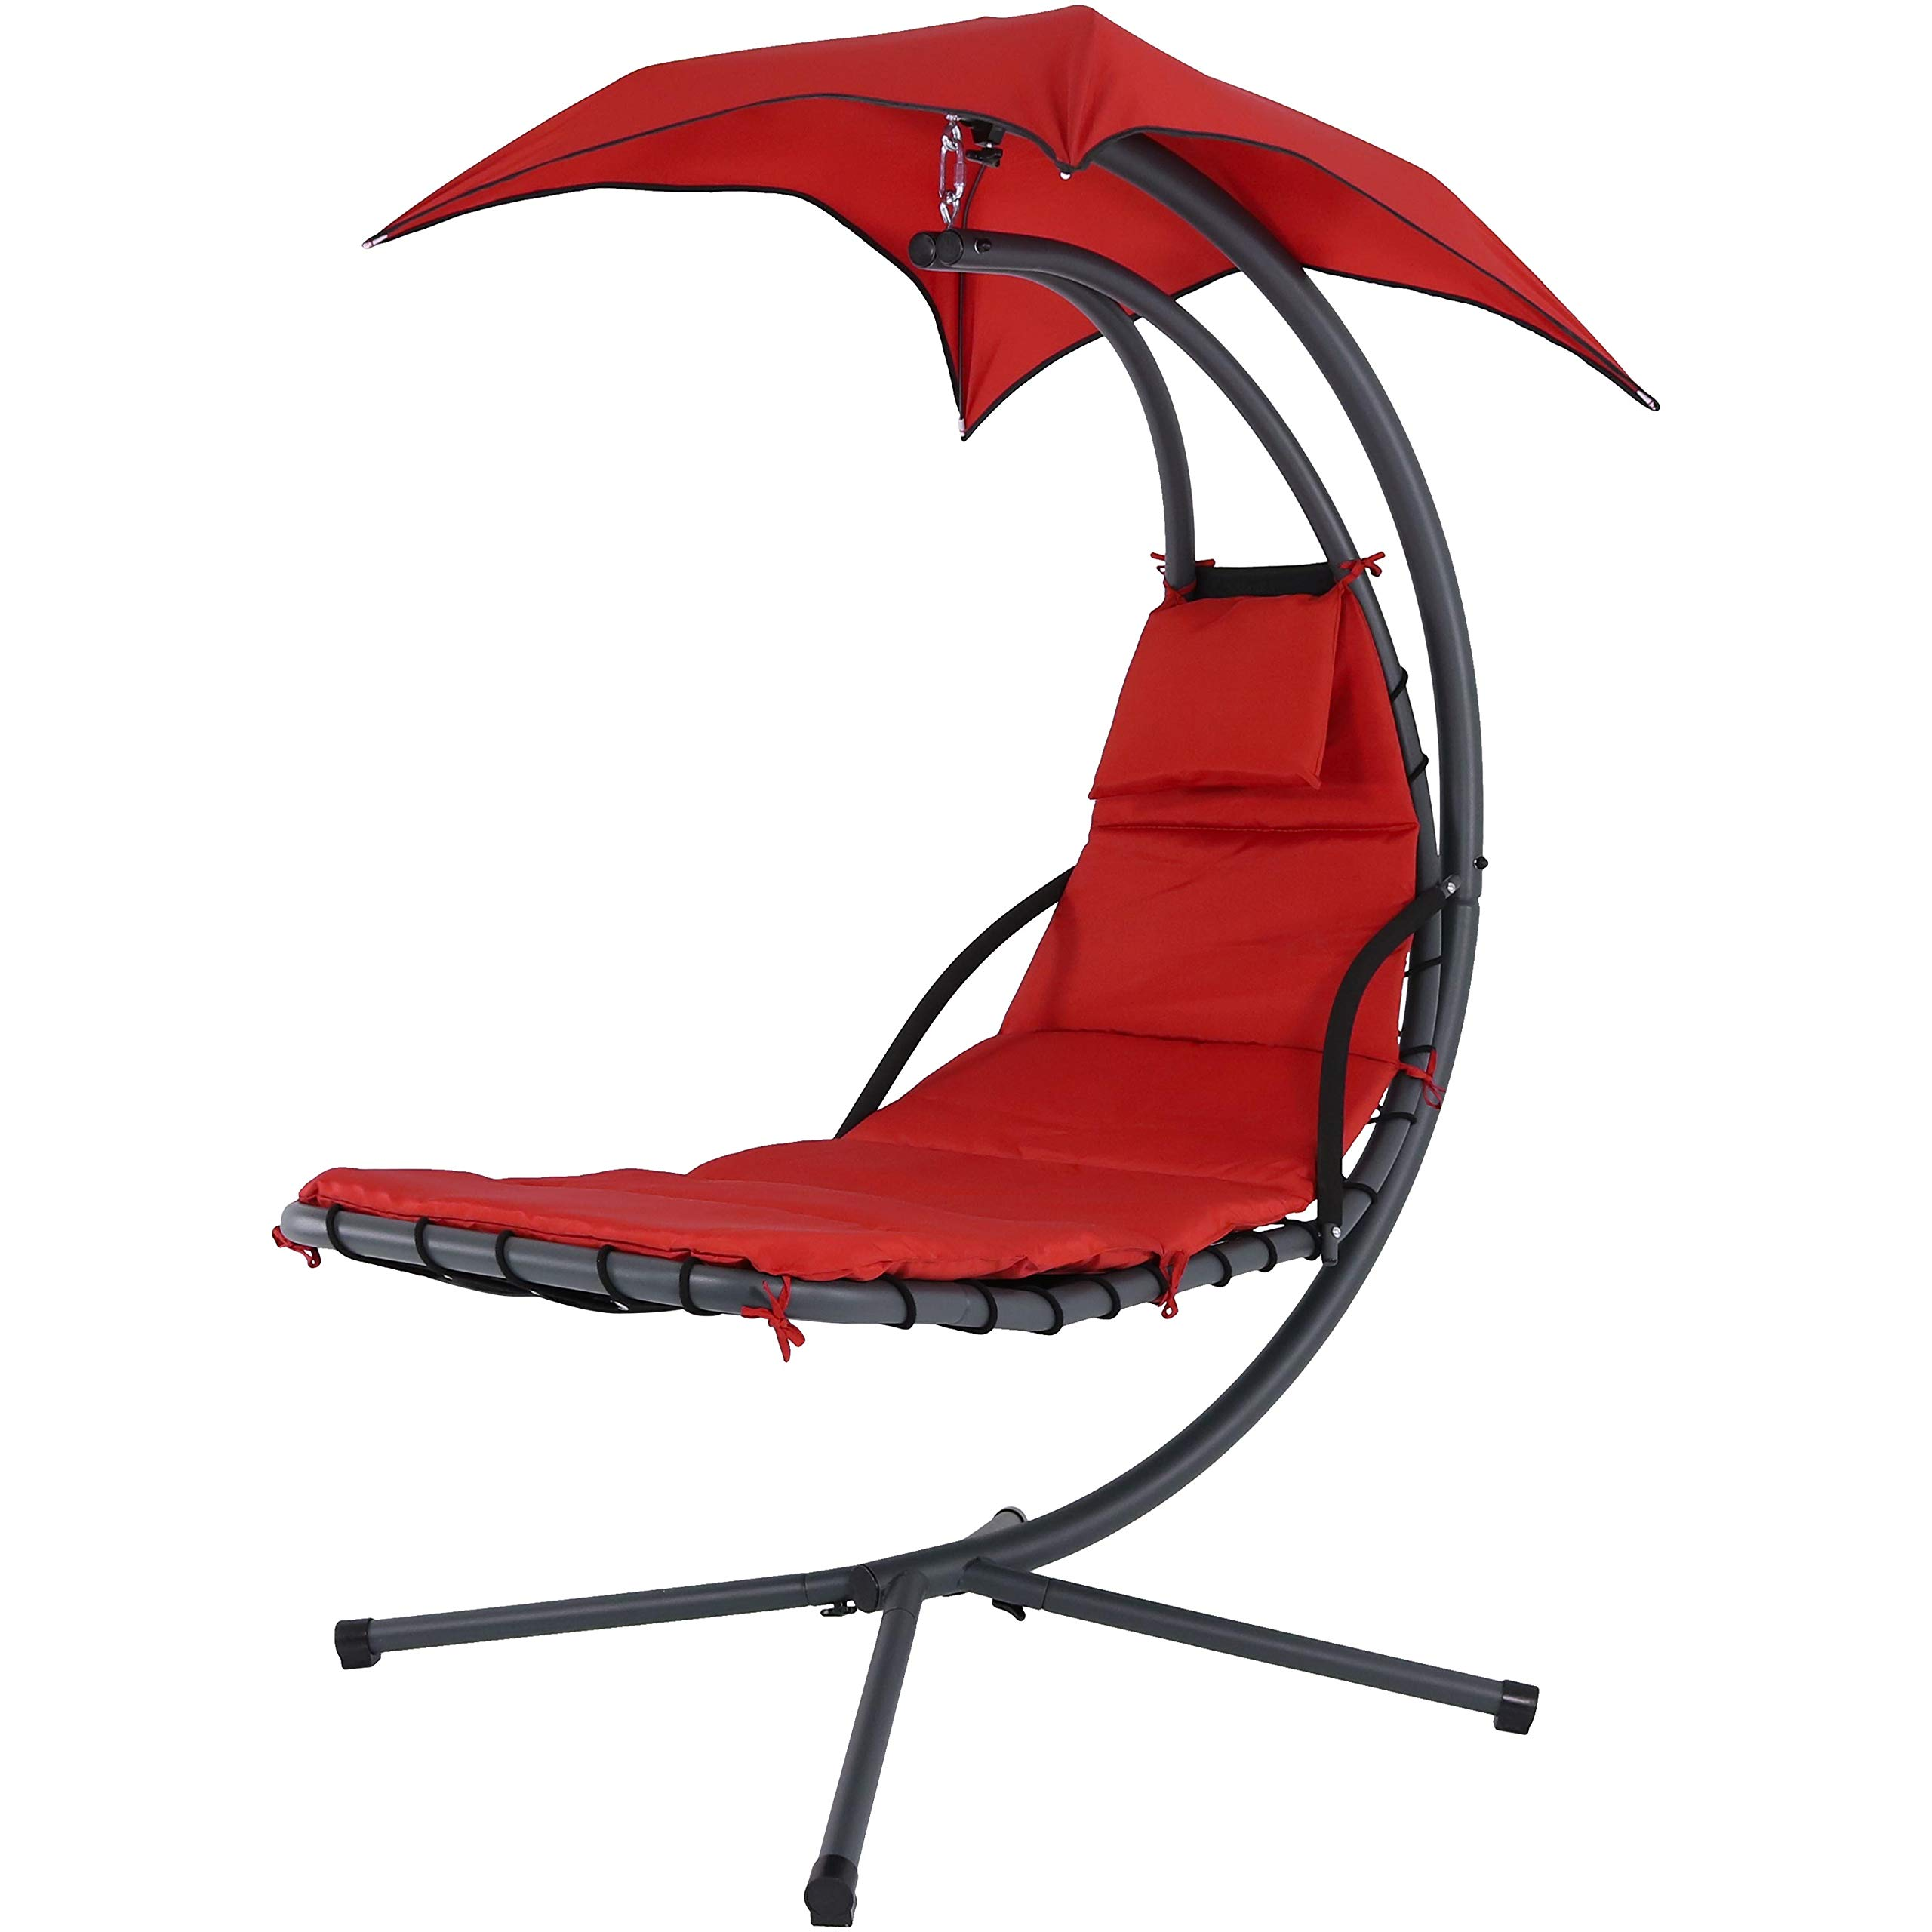 Sunnydaze Red Floating Chaise Lounger Swing Chair with Canopy Umbrella, 43 Inch Wide x 80 Inch Tall